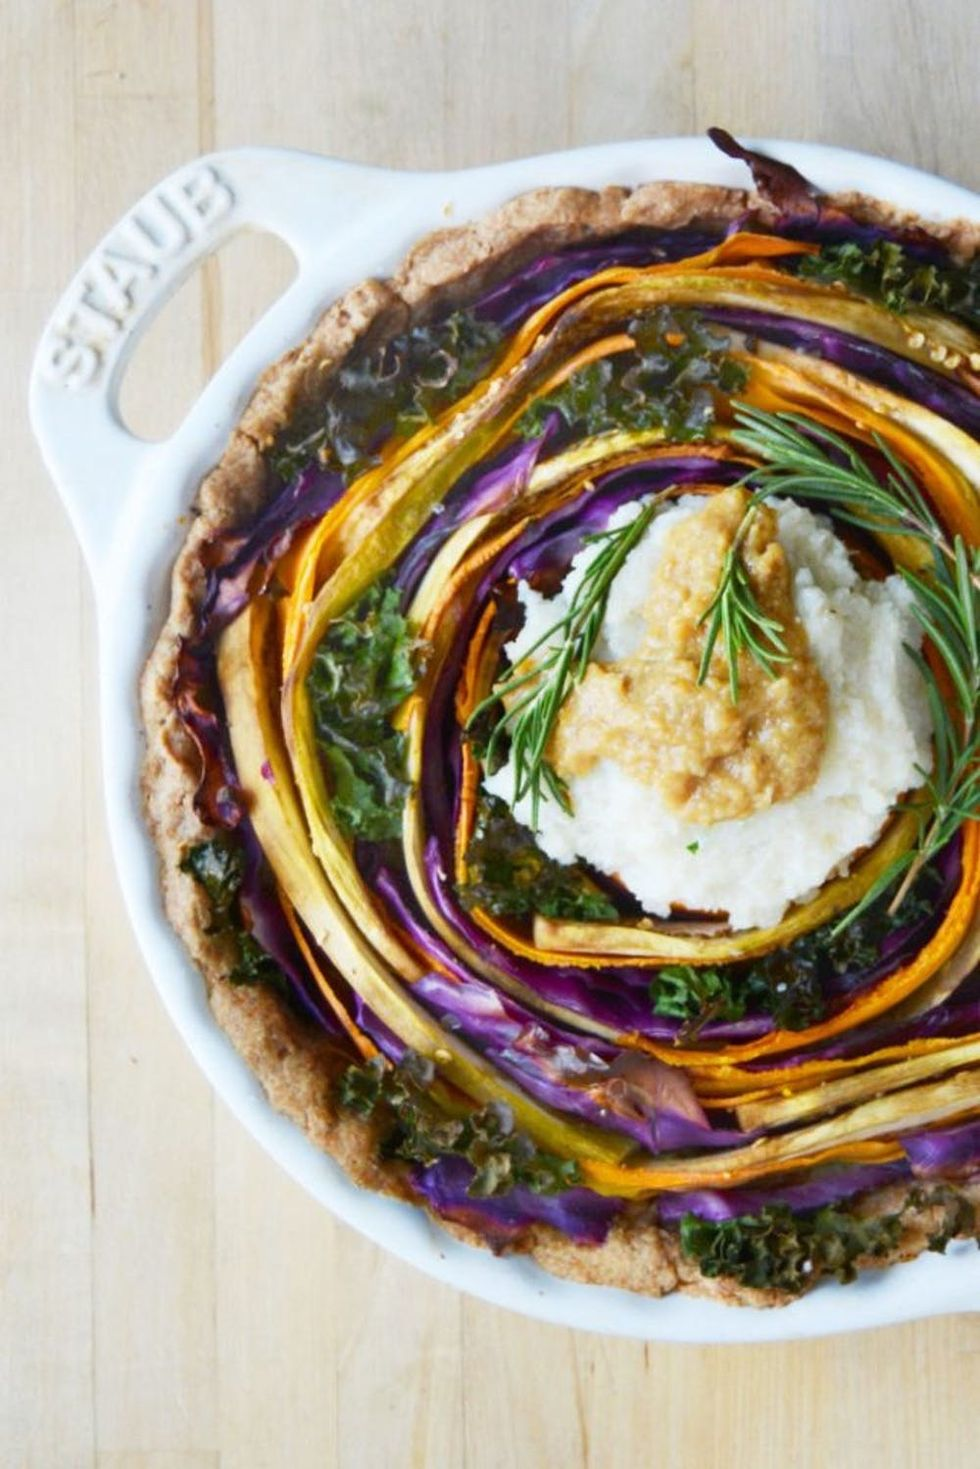 18 Swanky Recipes To Throw The Most Epic Vegetarian Dinner Party On Meatless Monday Brit Co